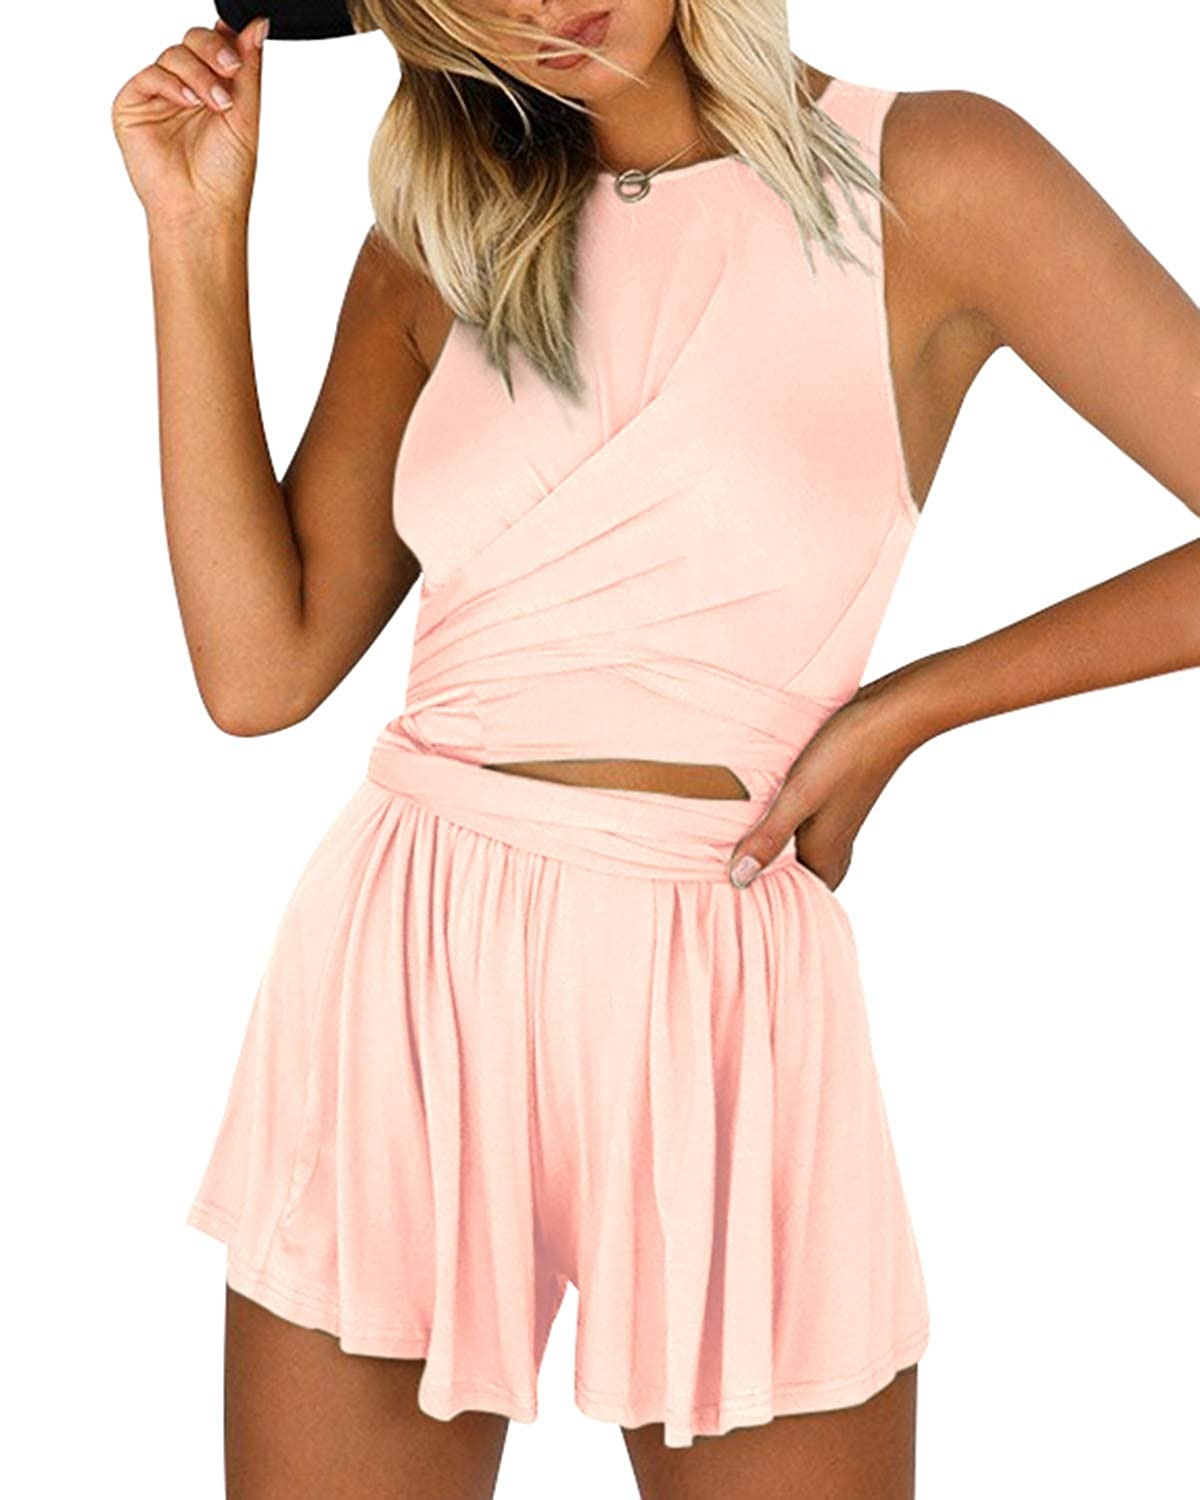 252892323ba Amazon.com  YOINS Women Playsuit Rompers Convertible Plunge Sexy V Neck  Sleeveless Backless Jumpsuits  Clothing